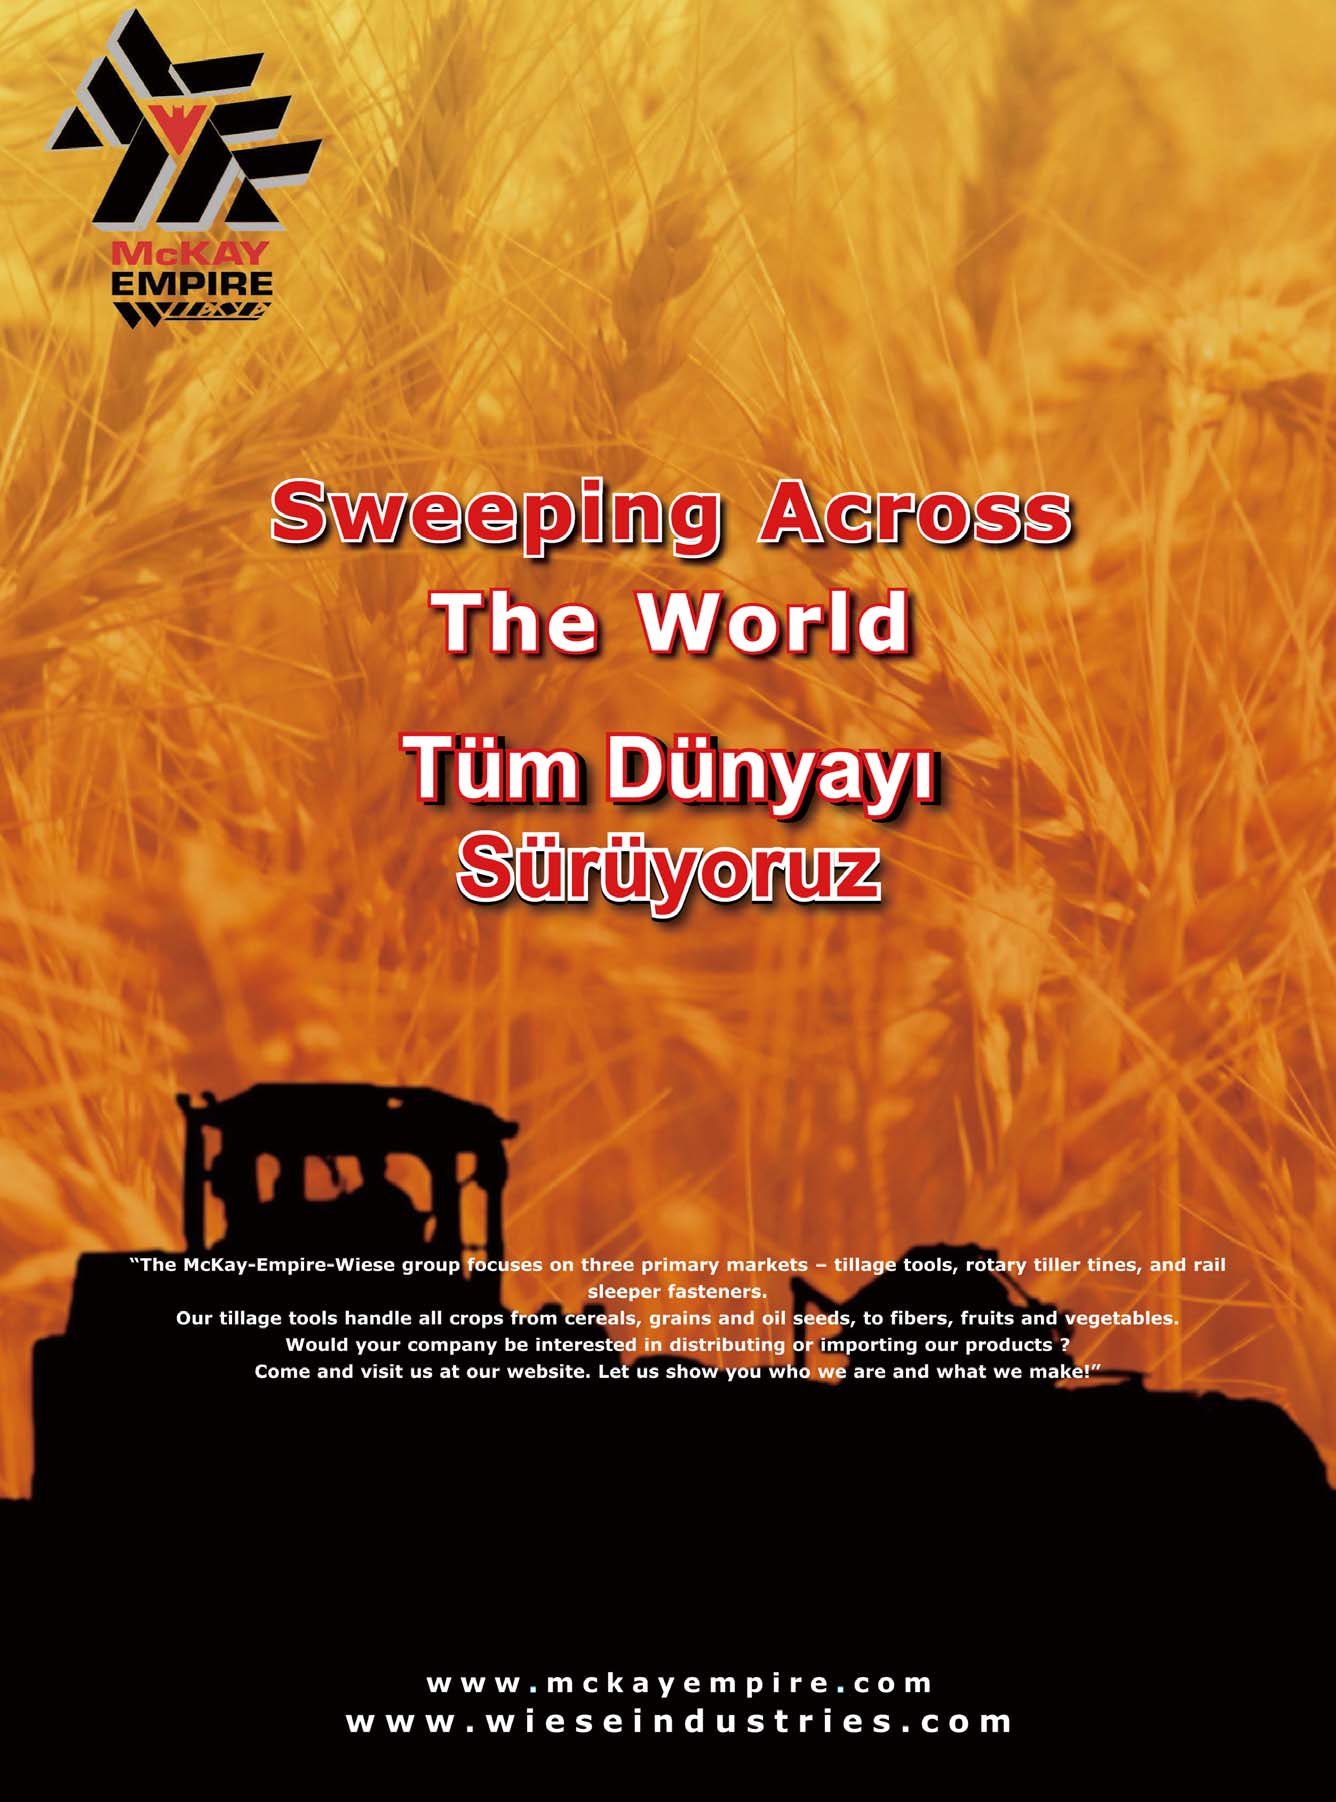 Sweeping Across The World Tüm Dünyayı Sürüyoruz The McKay-Empire-Wiese group focuses on three primary markets tillage tools, rotary tiller tines, and rail sleeper fasteners.